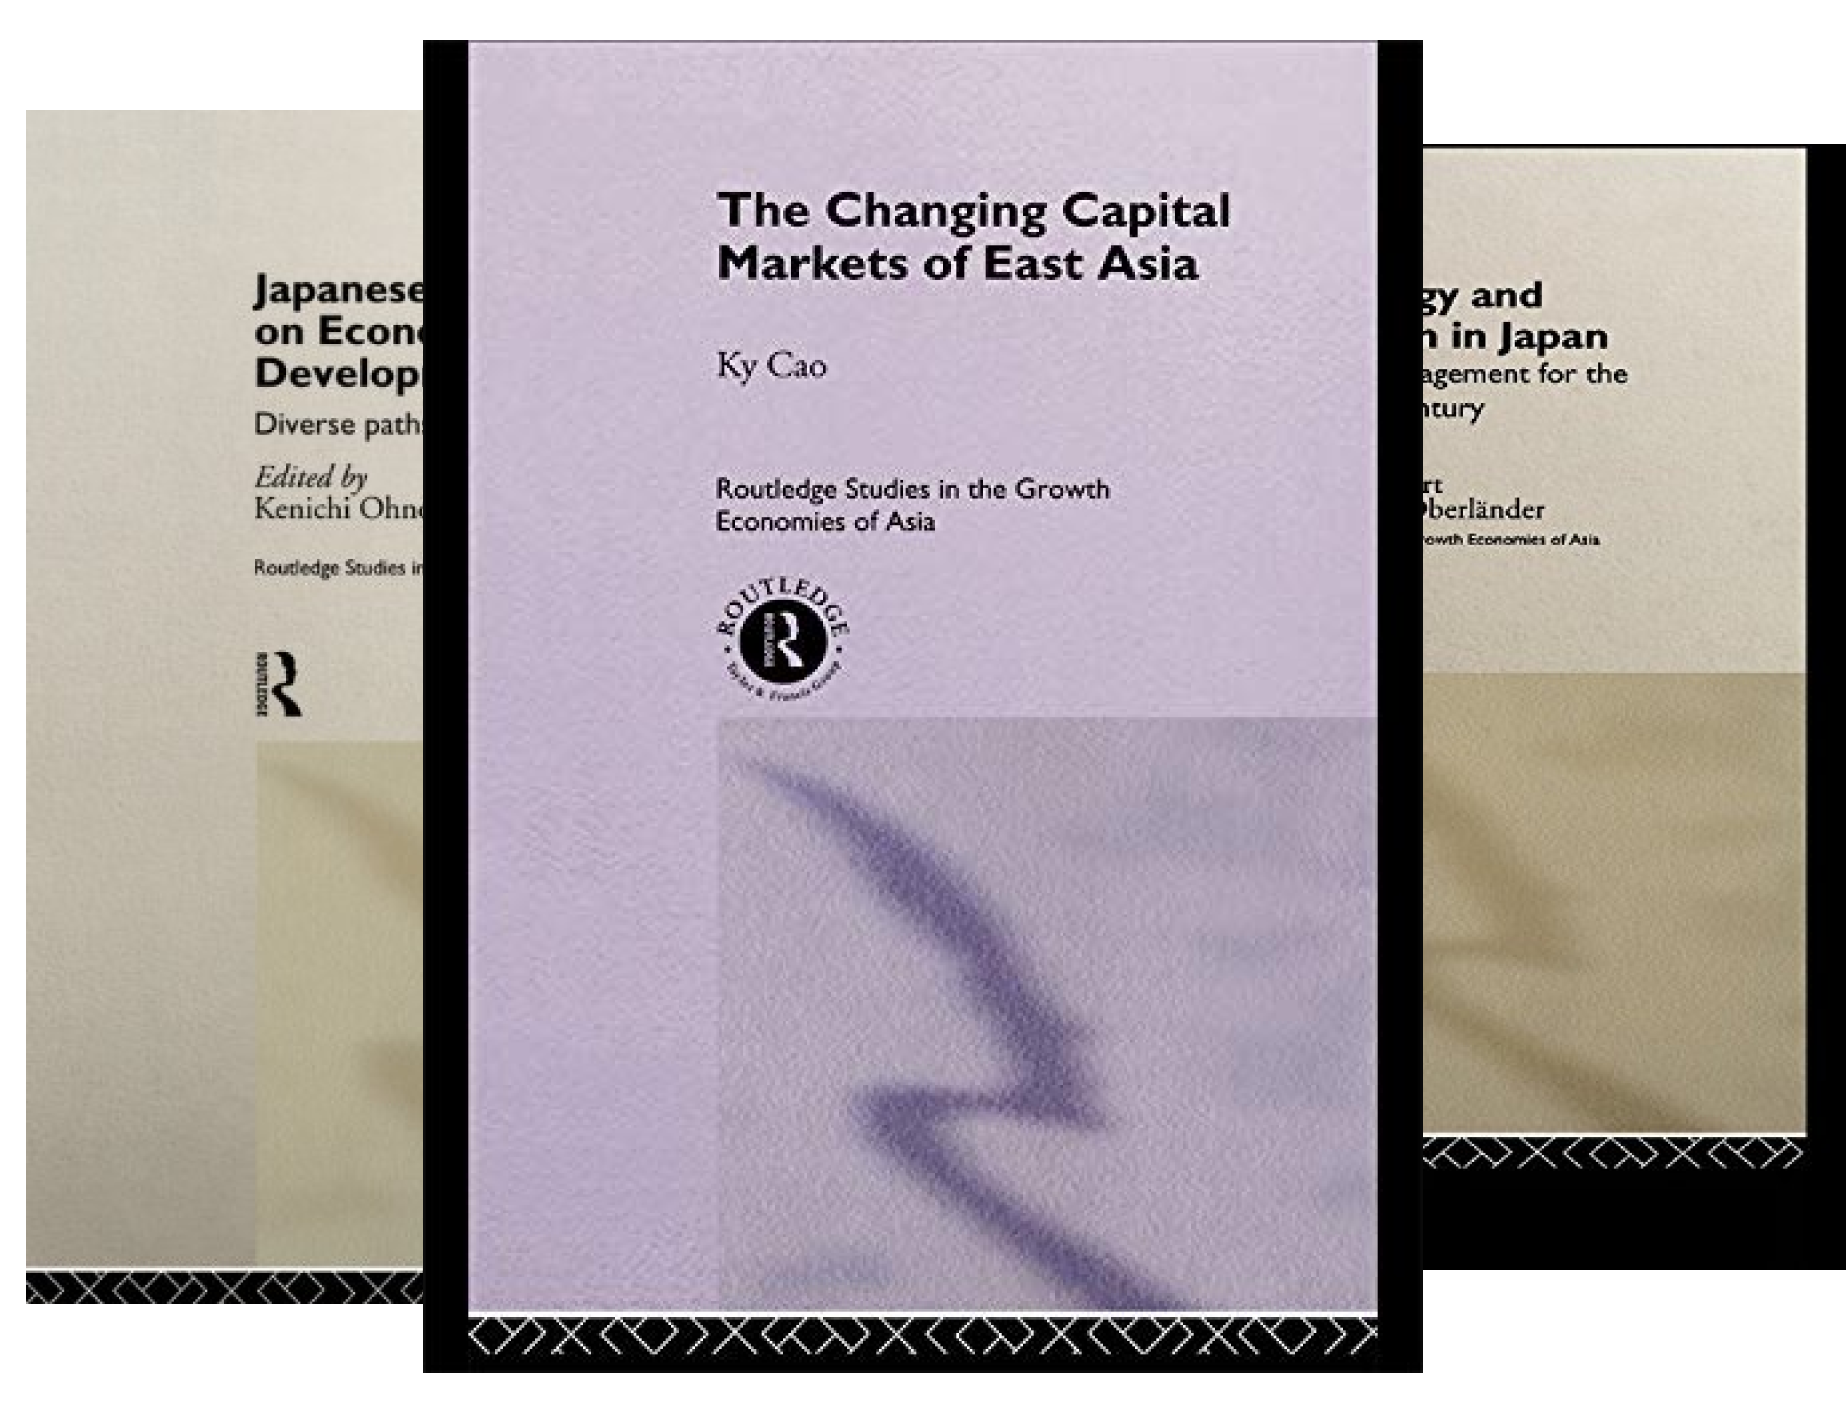 Routledge Studies in the Growth Economies of Asia